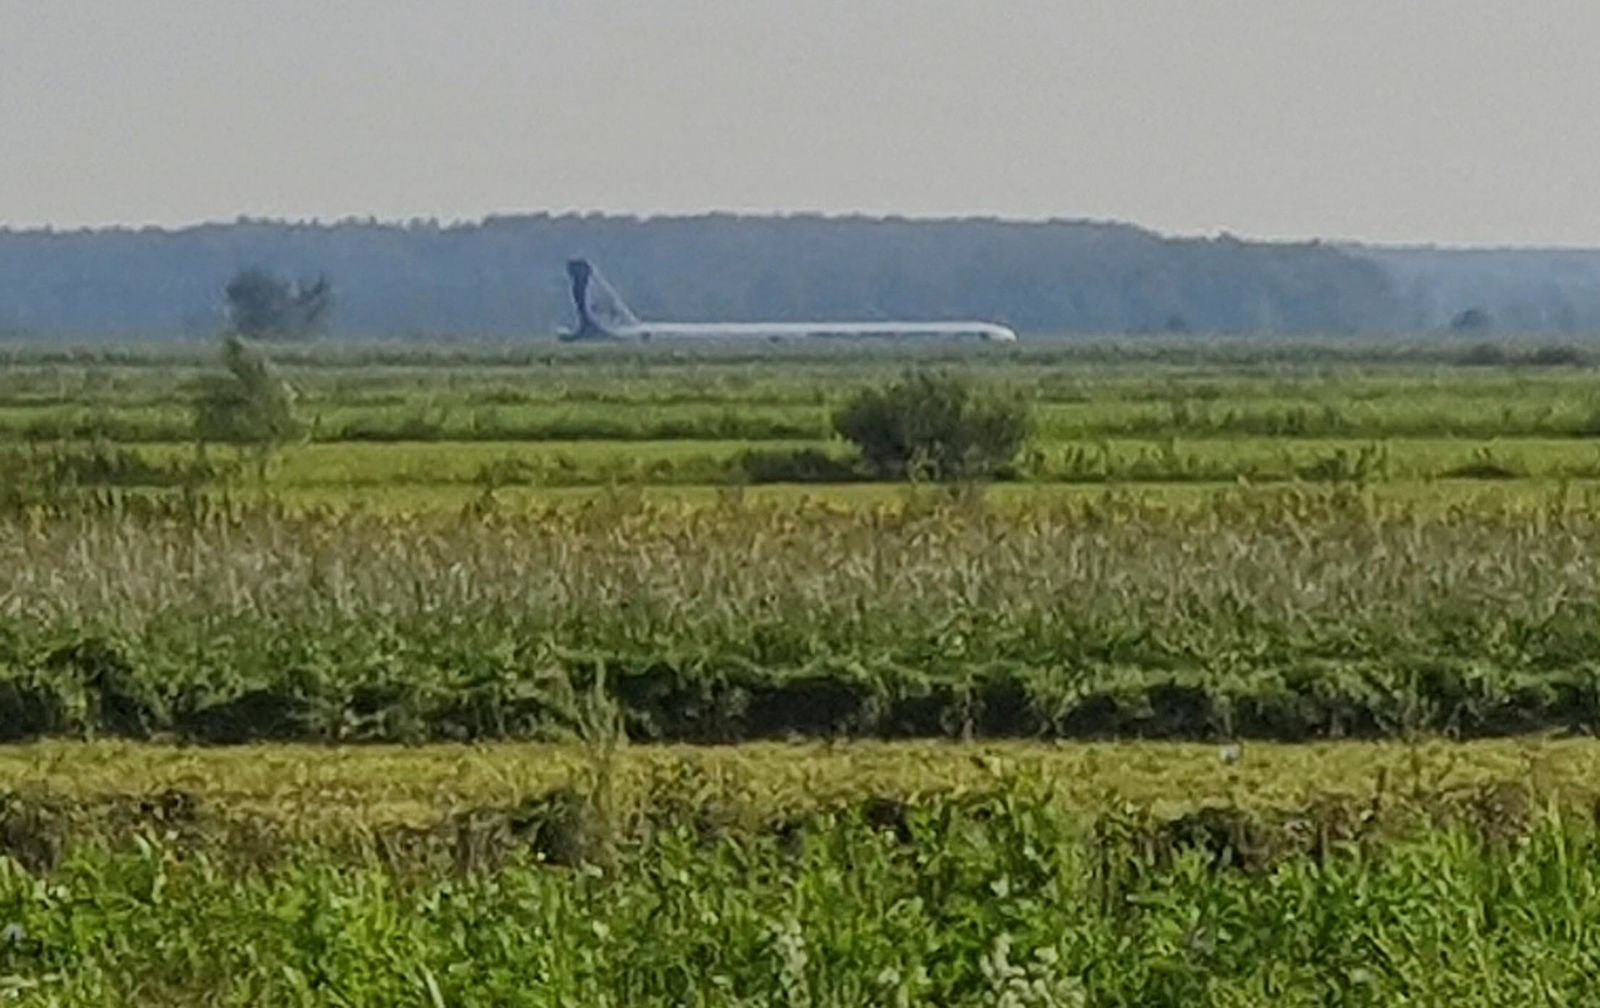 A Russian Ural Airlines' A321 plane is seen after an emergency landing in a cornfield near Ramenskoye, outside Moscow, Russia, Thursday, Aug. 15, 2019.{ } (Denis Voronin, Moscow News Agency via AP)